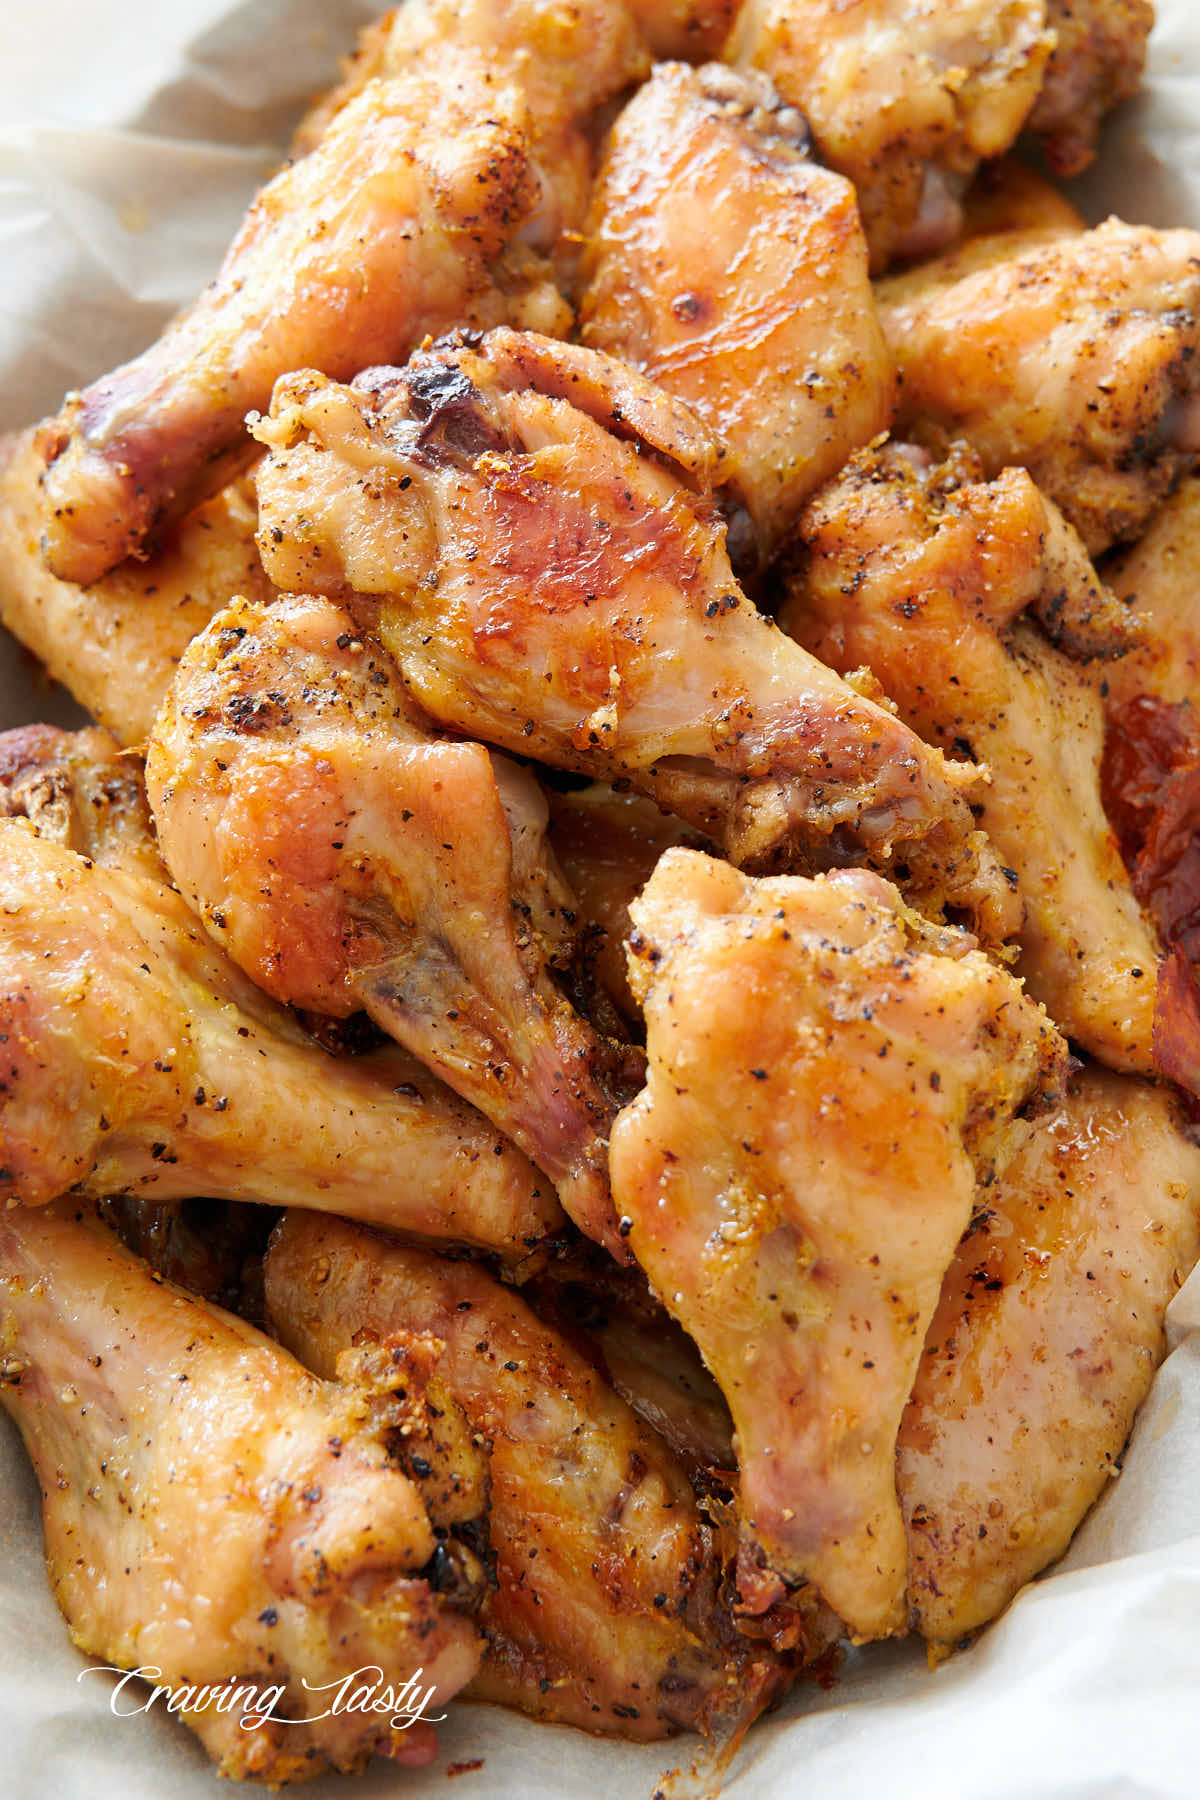 Close up of lemon pepper chicken wings in a basket, ready to serve.